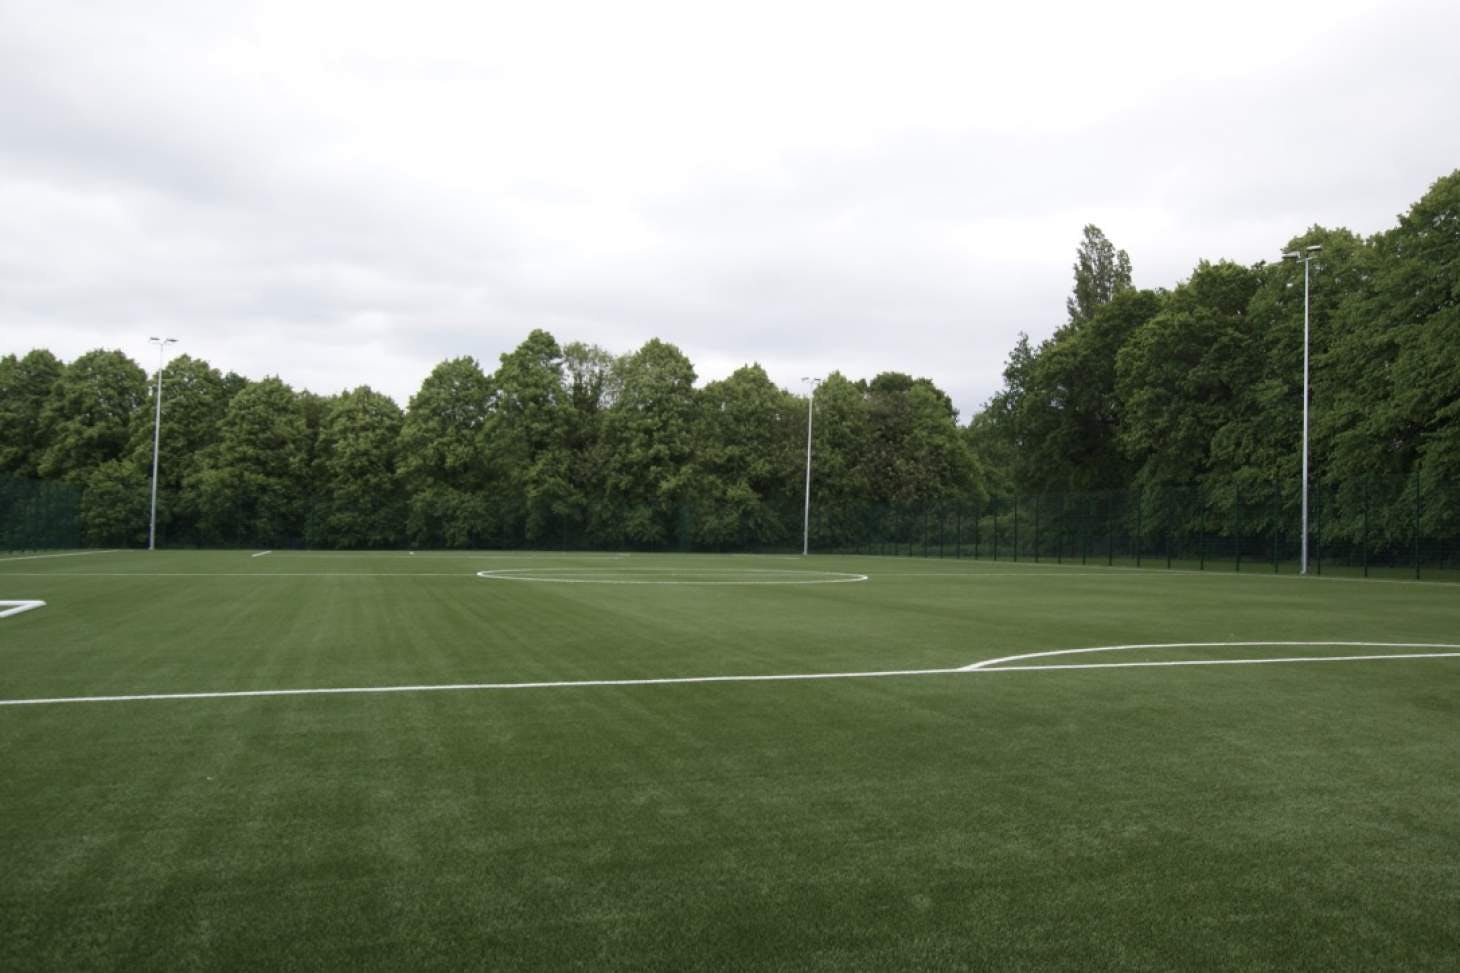 Fulbrook Middle School 5 a side | 3G Astroturf football pitch